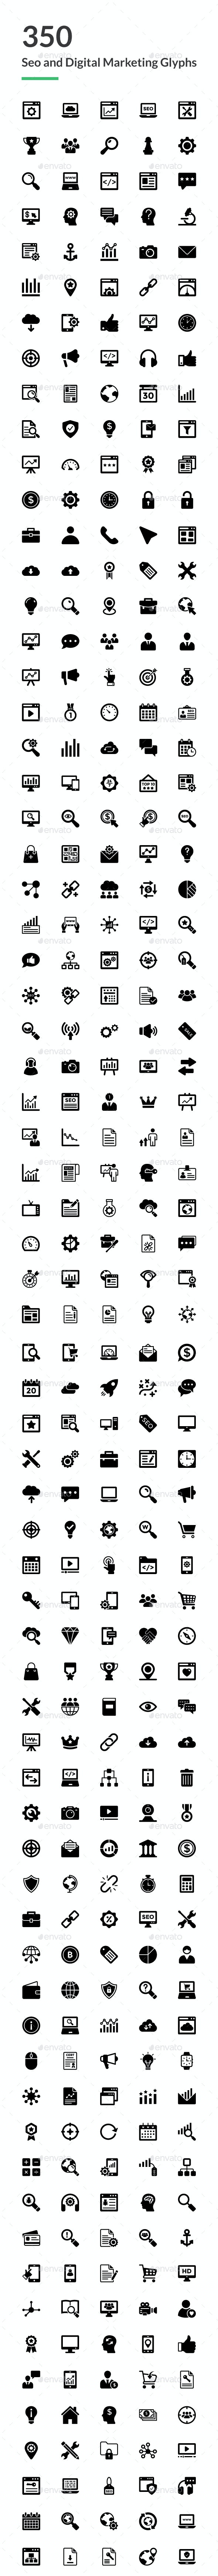 350 SEO and Digital Marketing Icons - Icons